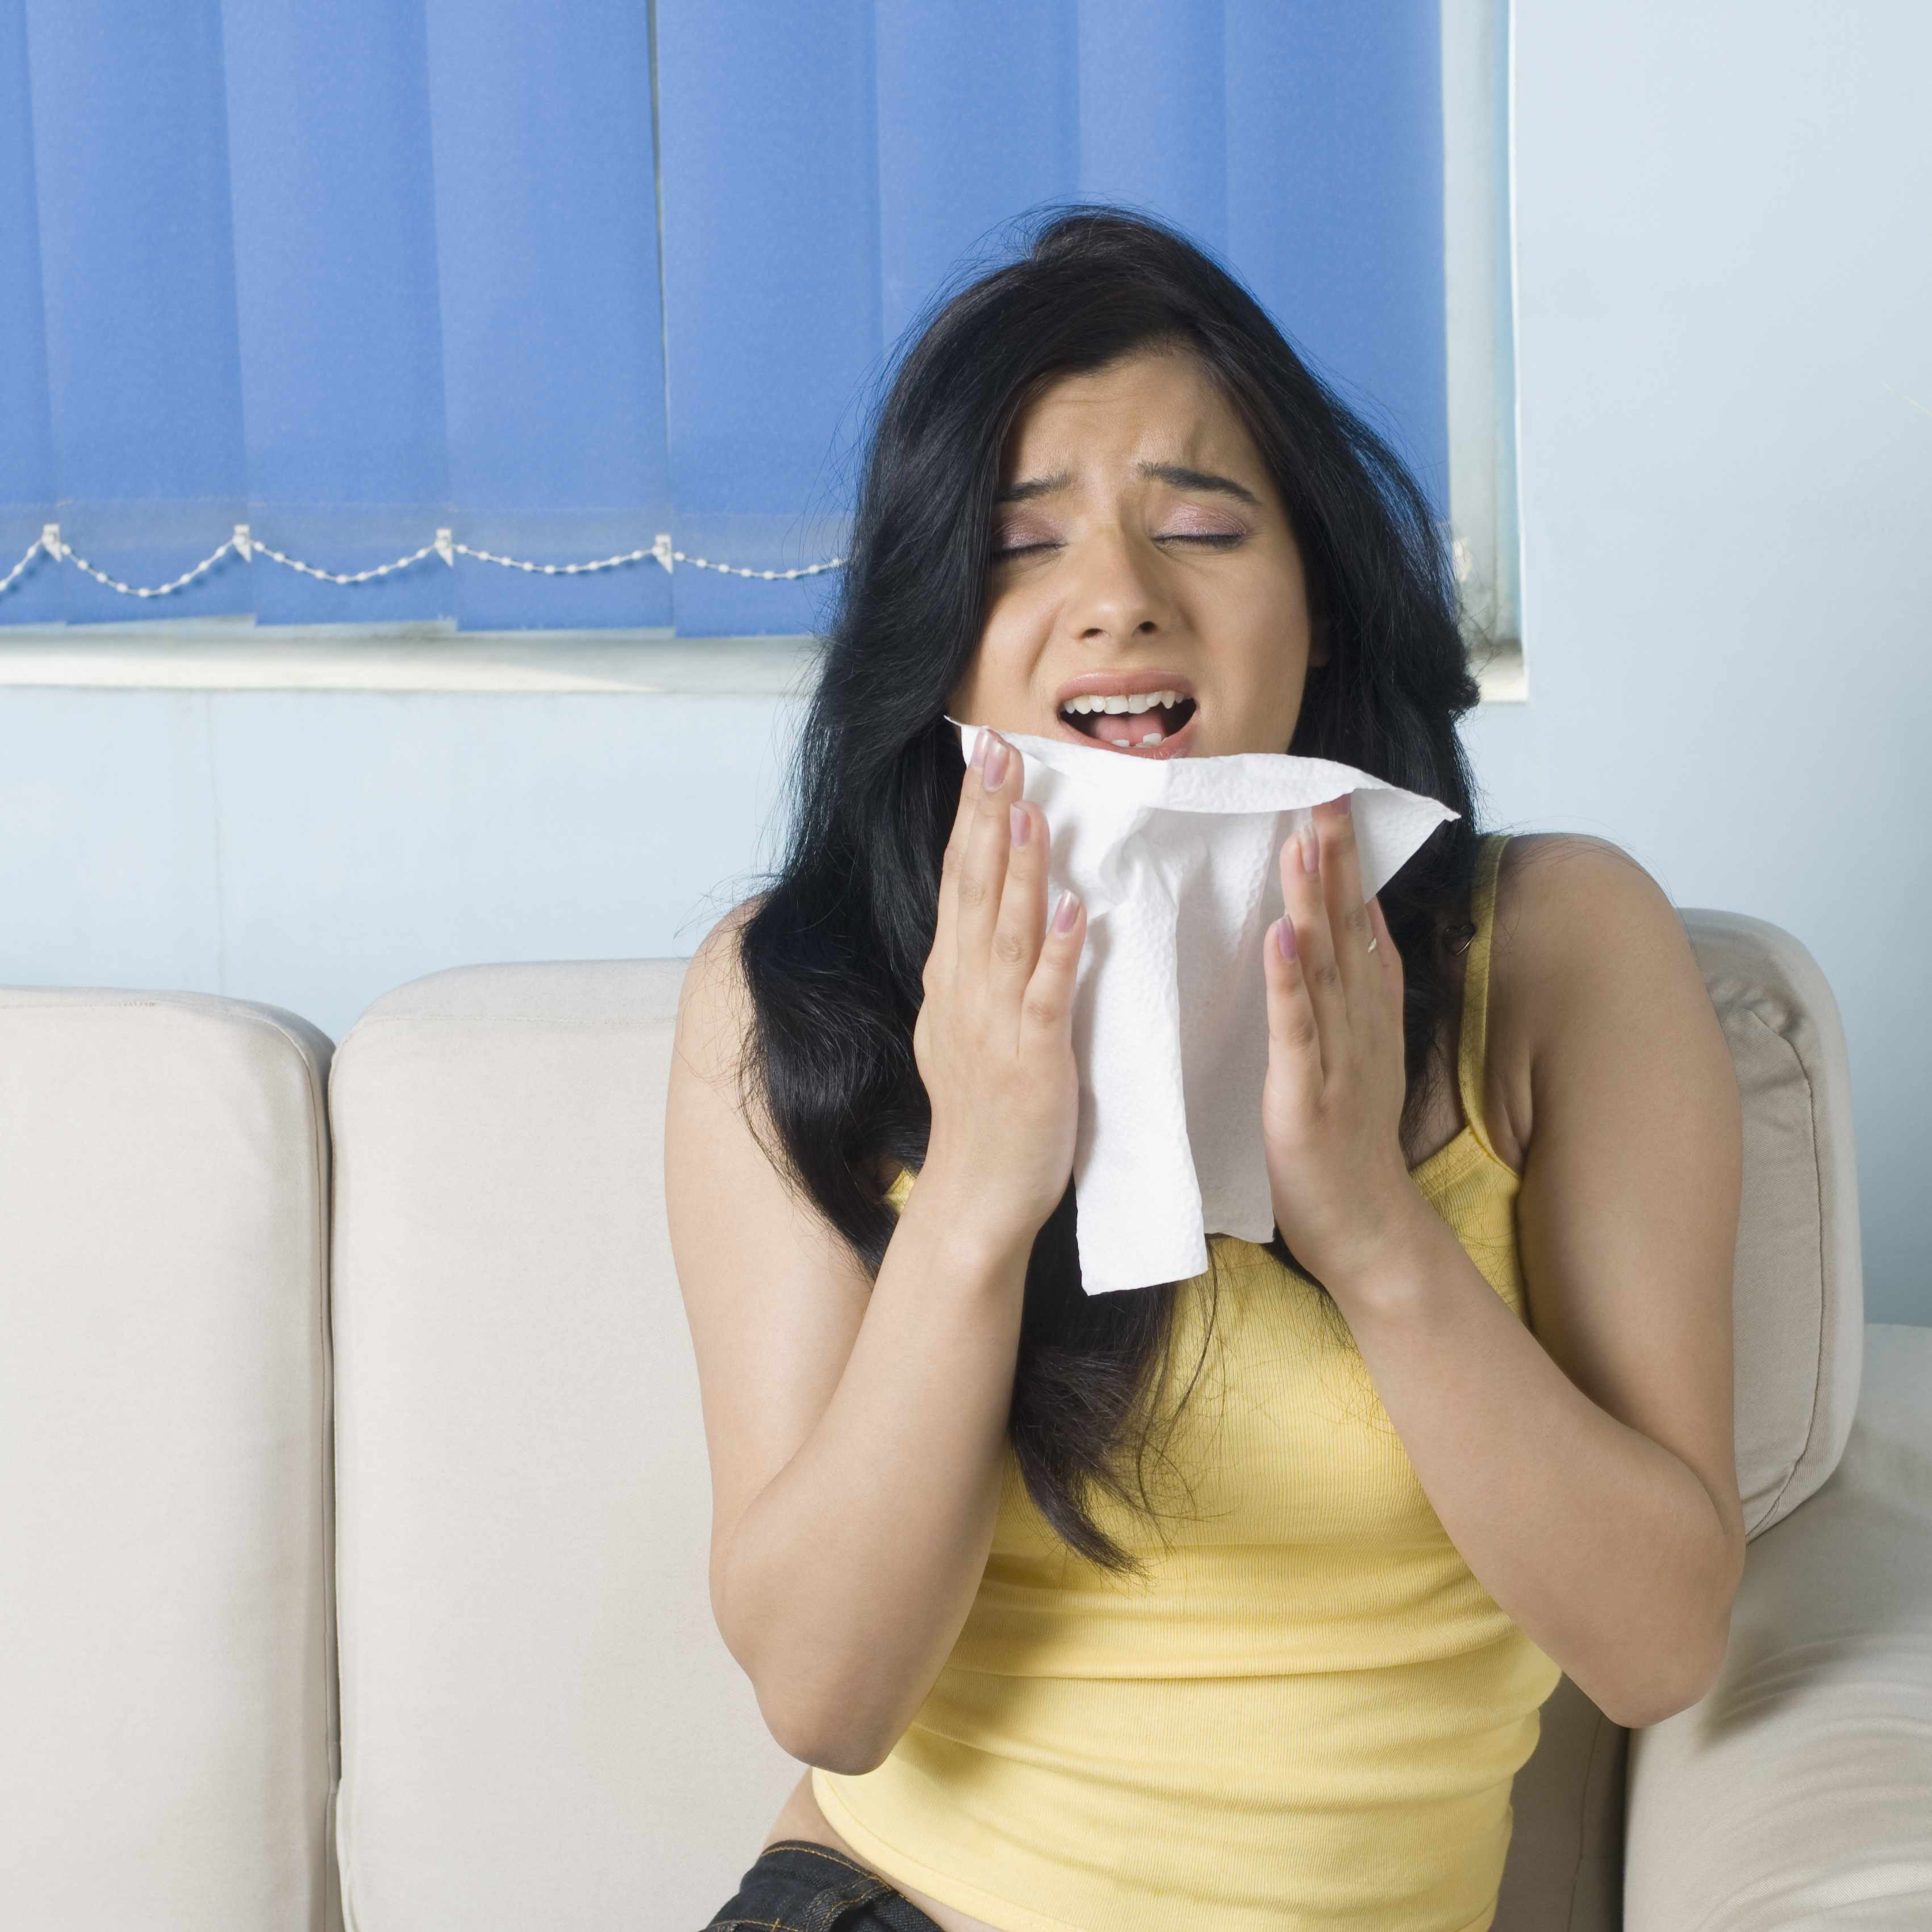 a young woman sitting on a couch, just about to sneeze